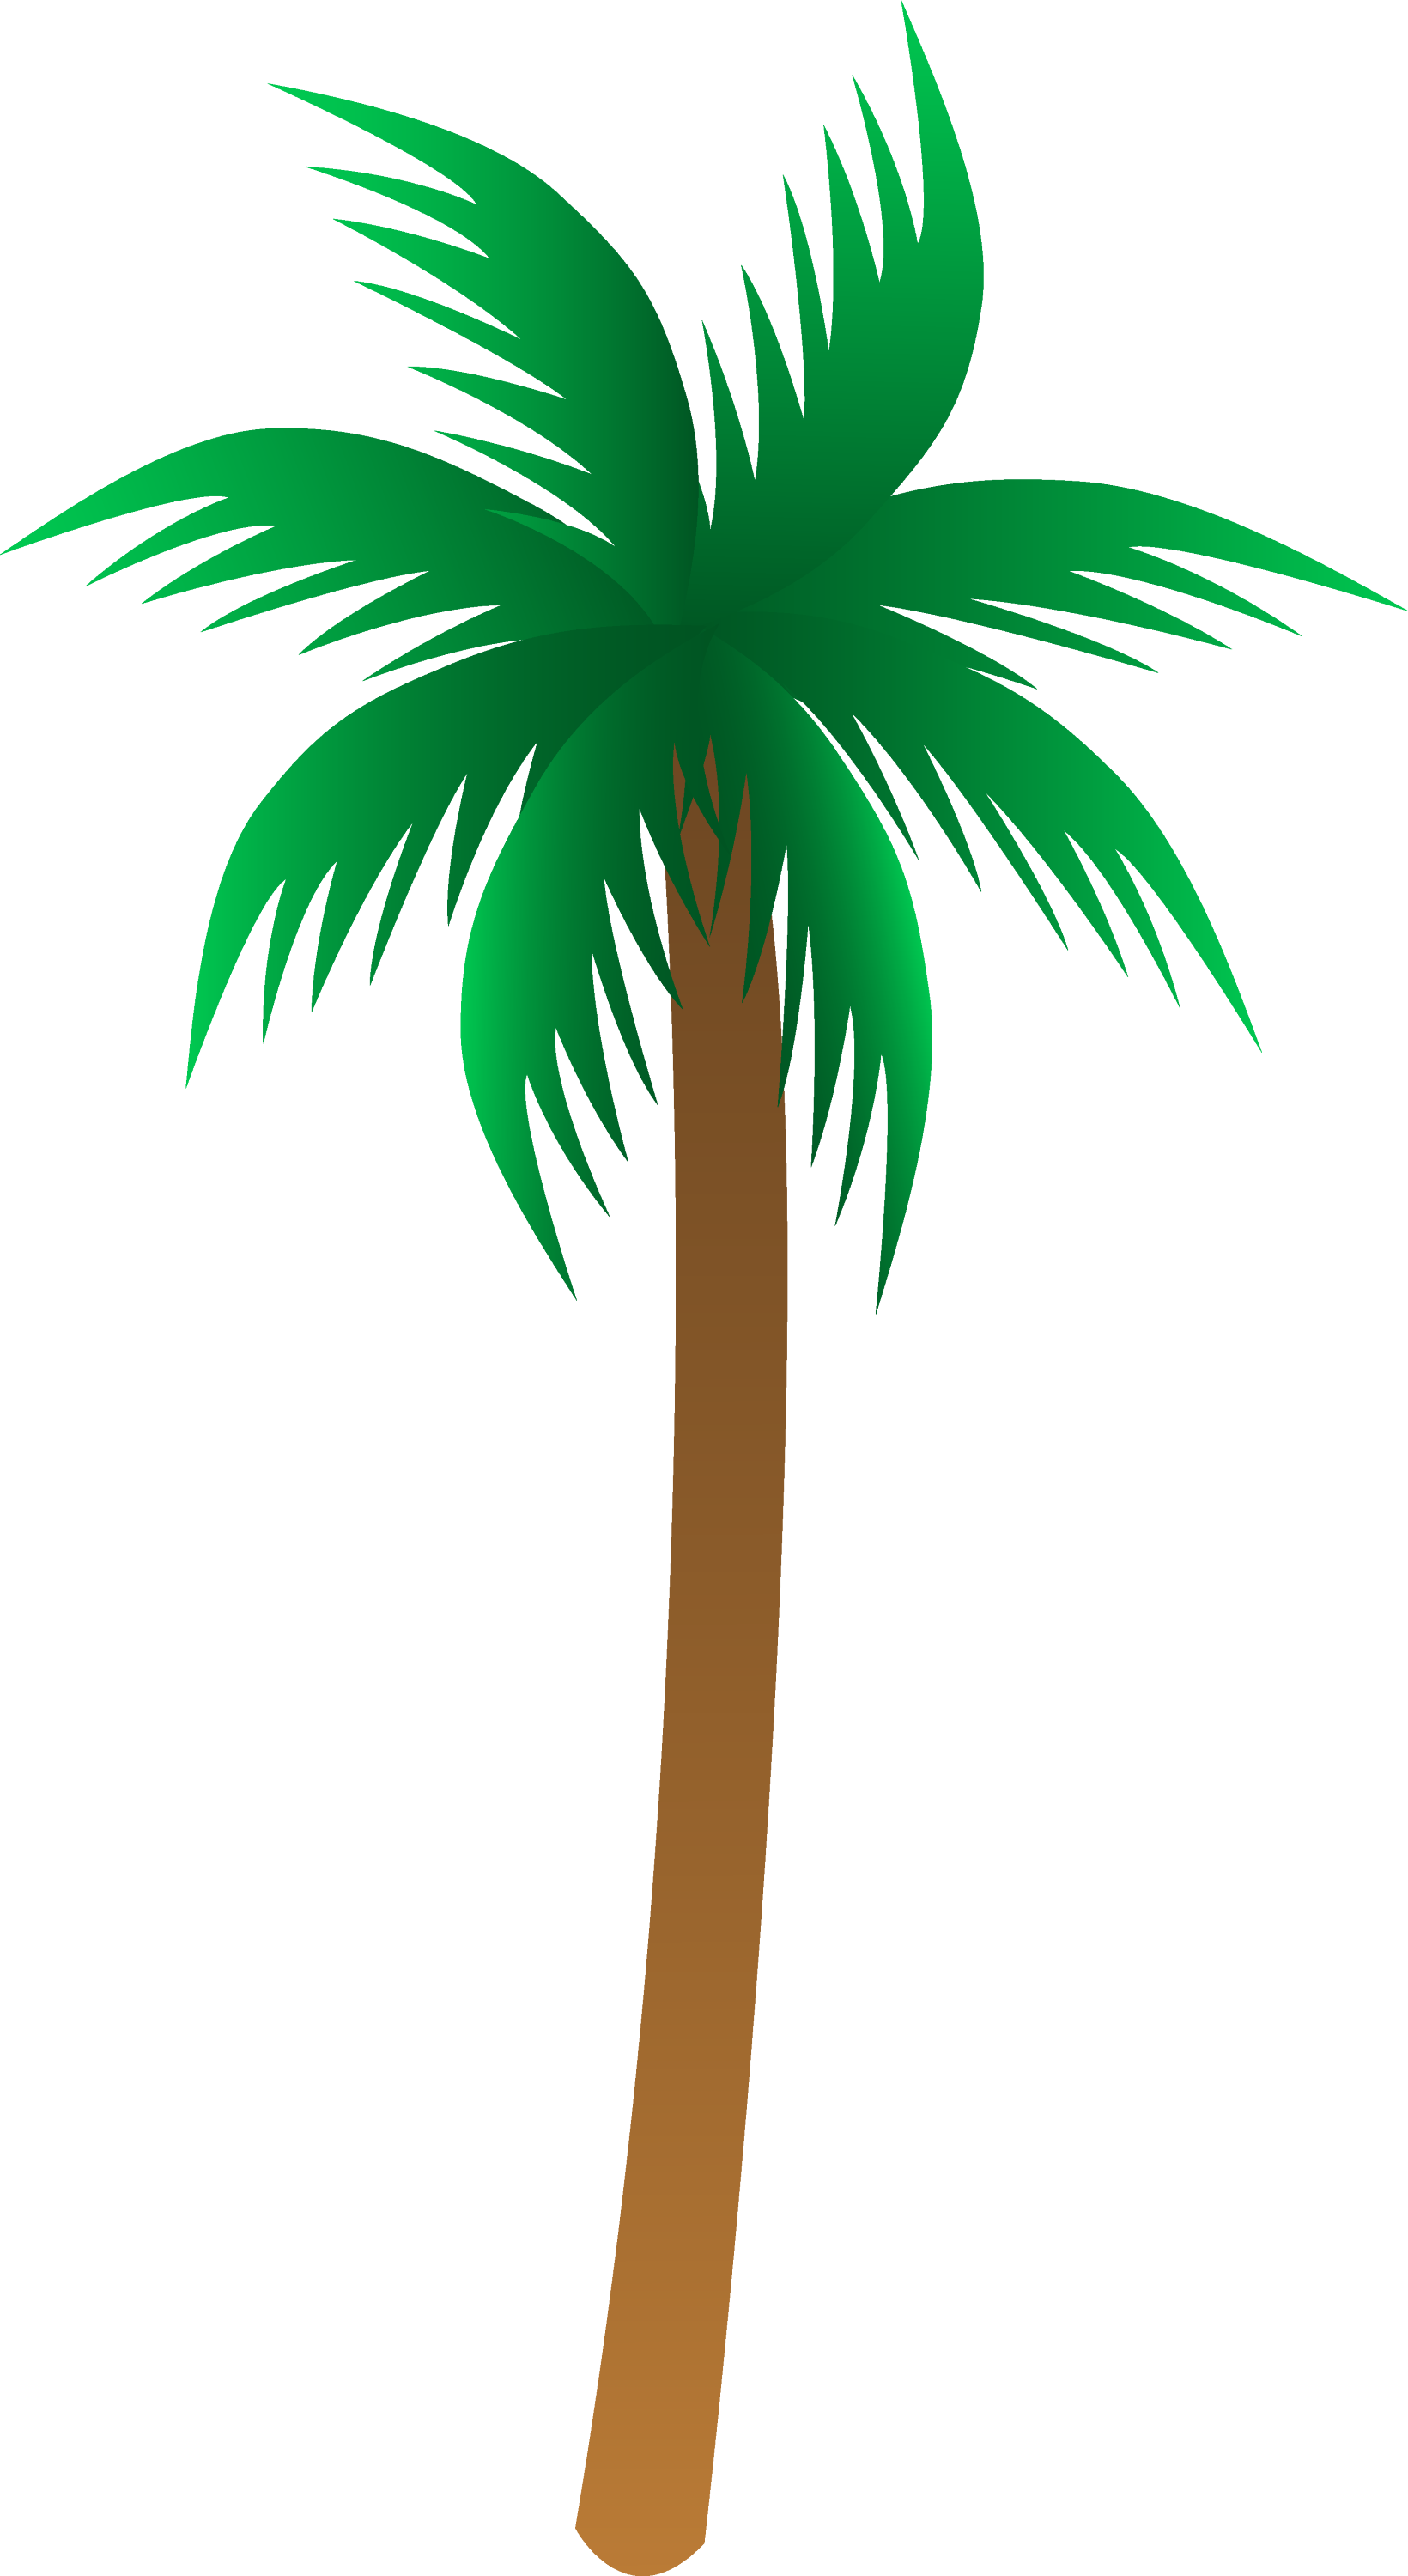 Simple Palm Tree Vector - Free Clip Art: sweetclipart.com/simple-palm-tree-vector-1178